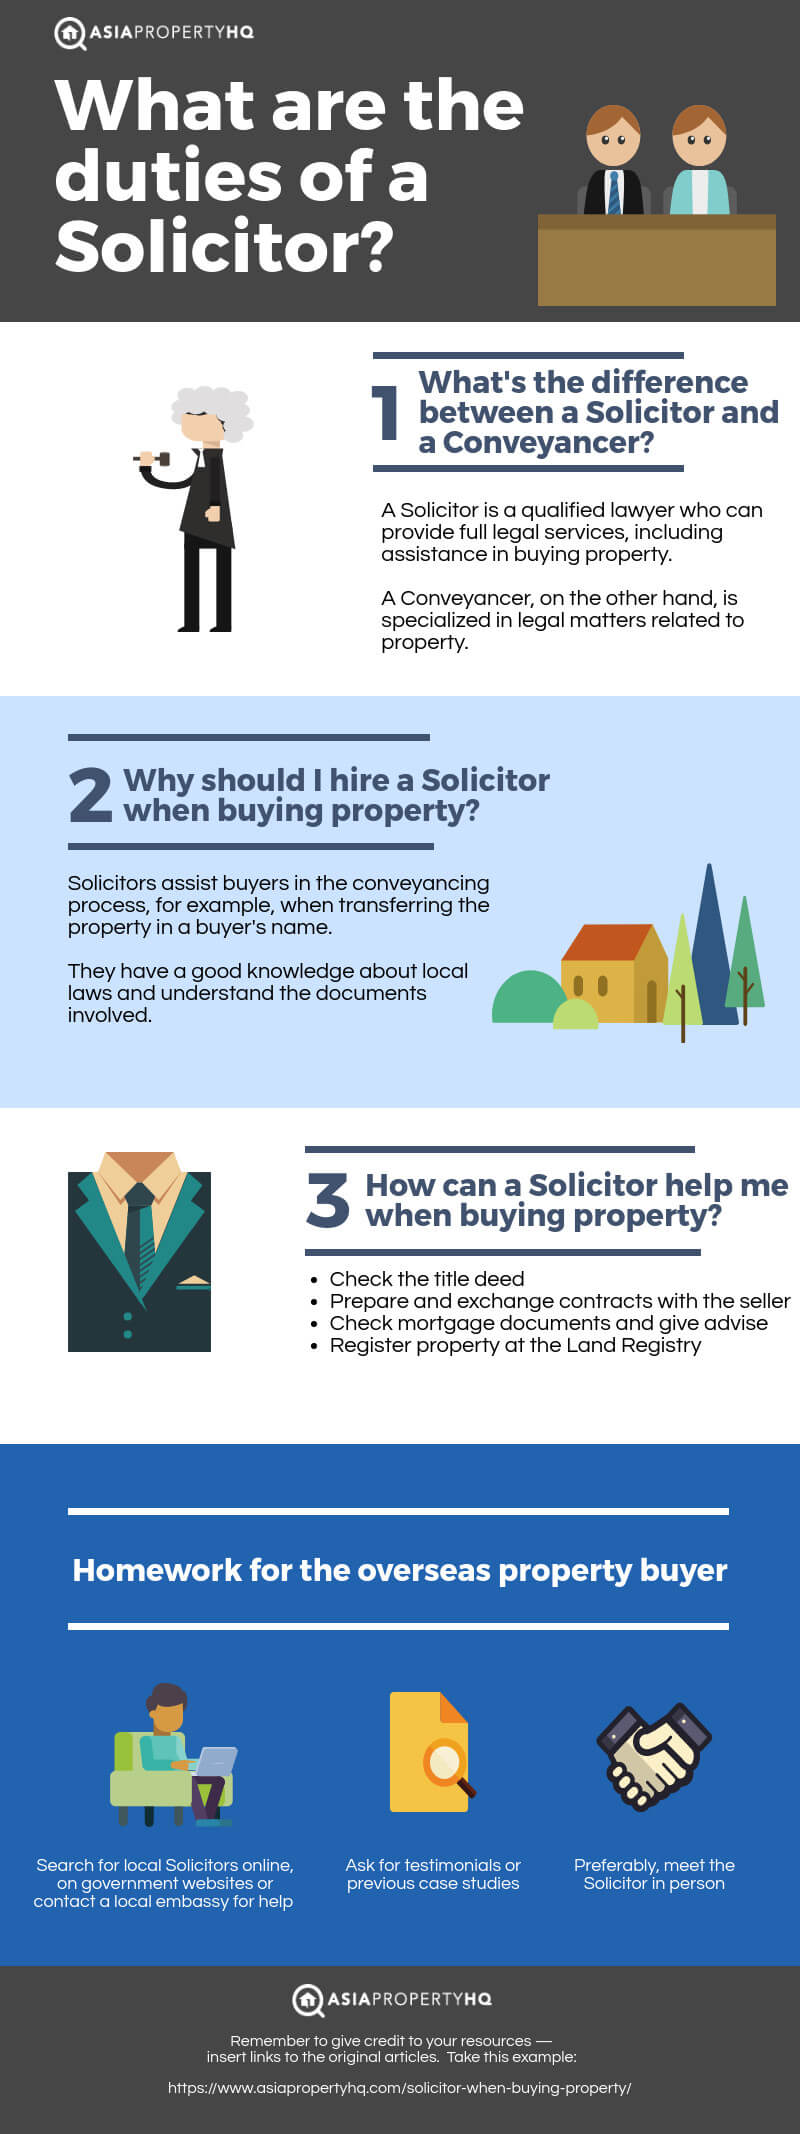 Duties Of A Solicitor Infographic